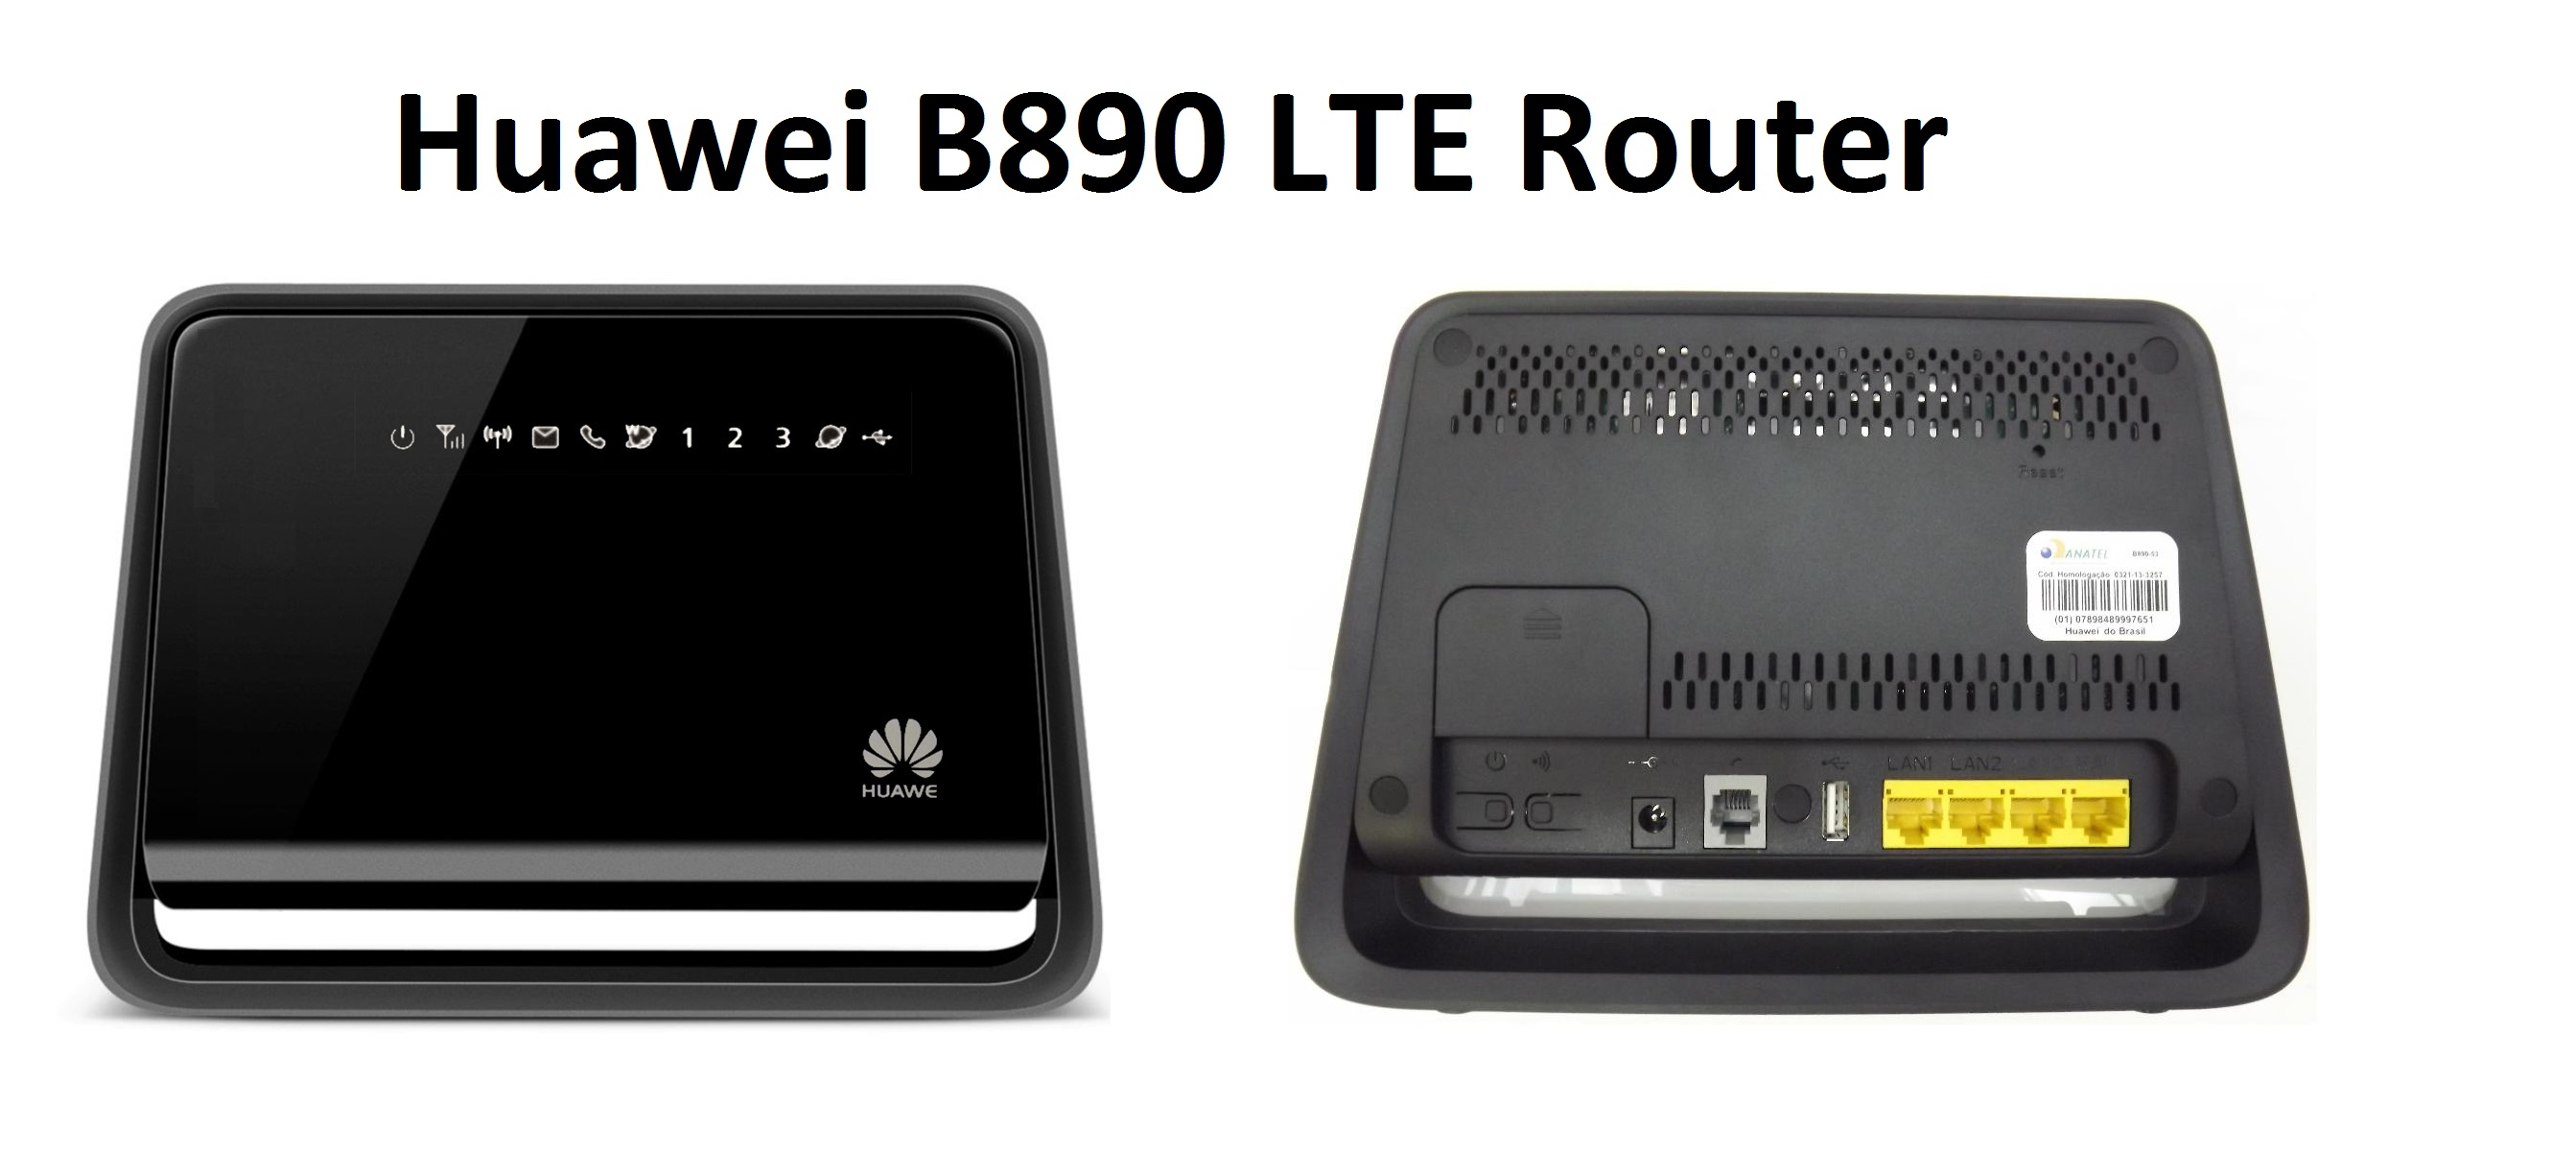 huawei b890 lte router im detail. Black Bedroom Furniture Sets. Home Design Ideas